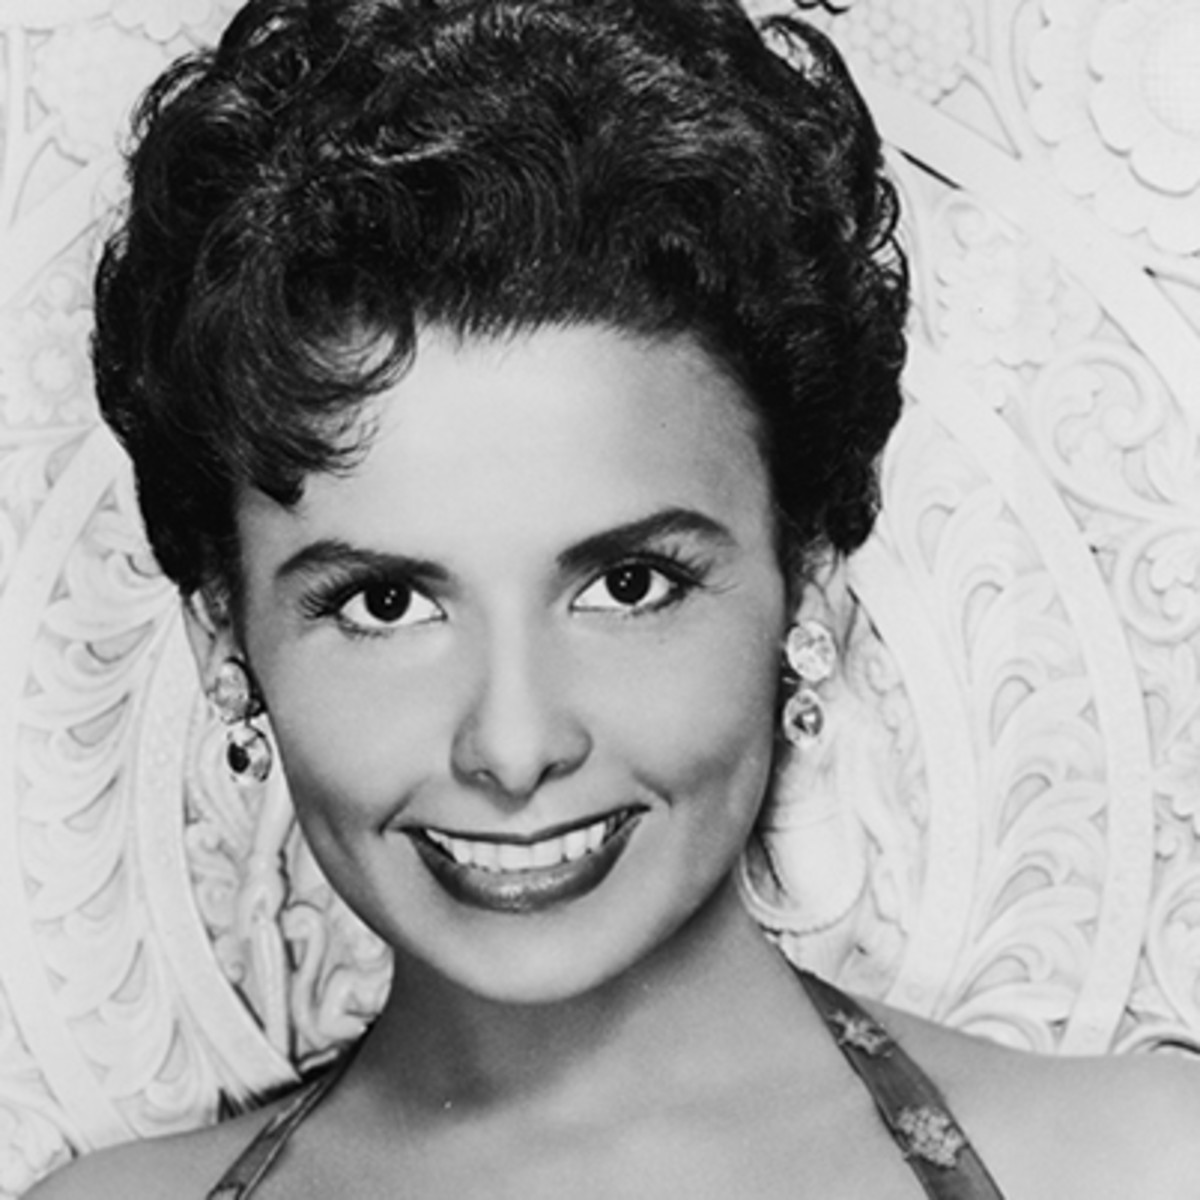 lena horne   actress activist civil rights activist